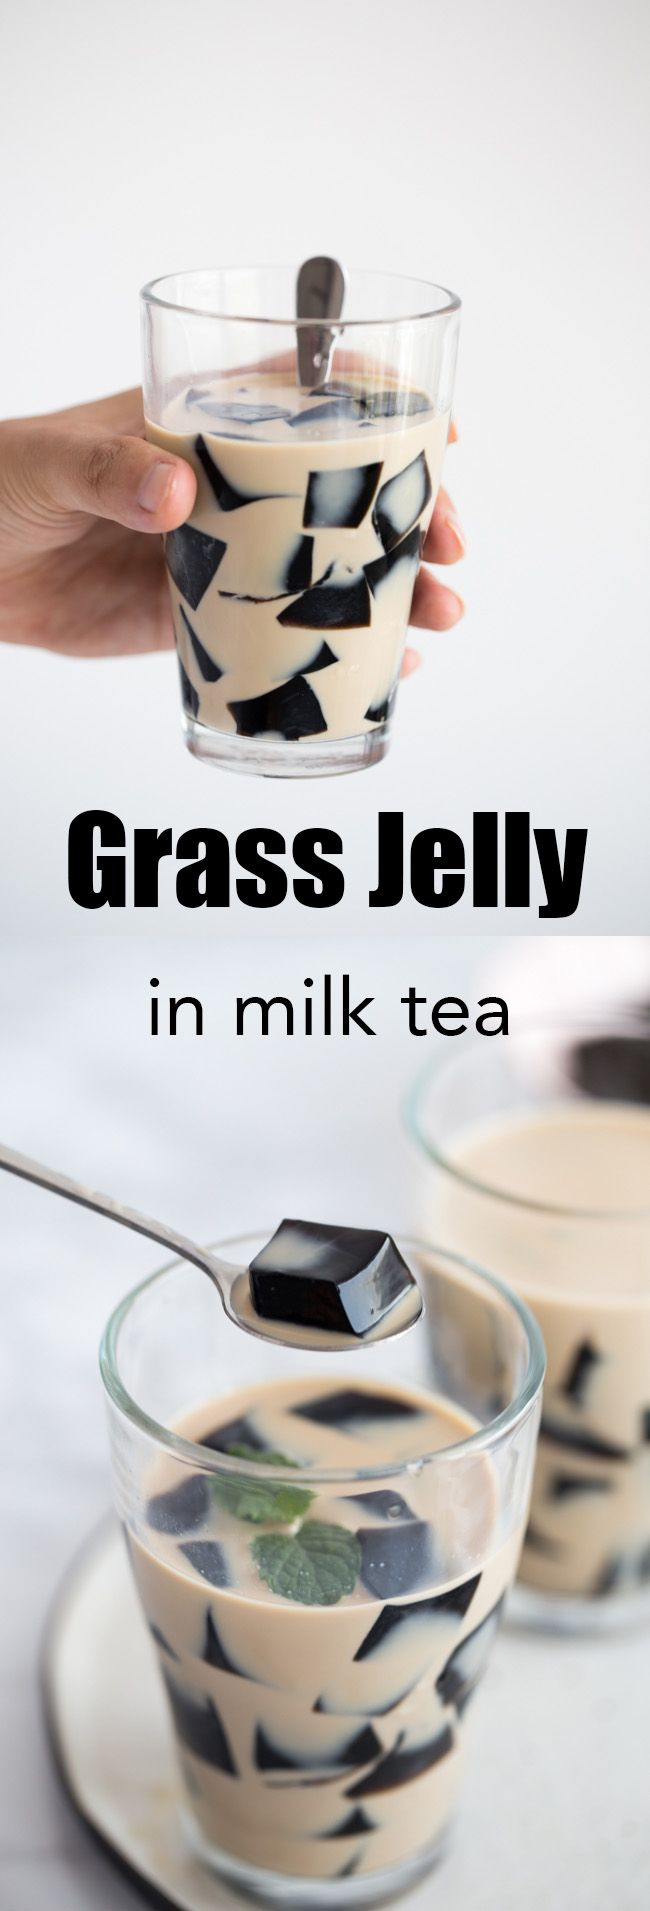 grass jelly in milk tea, grass jelly drink